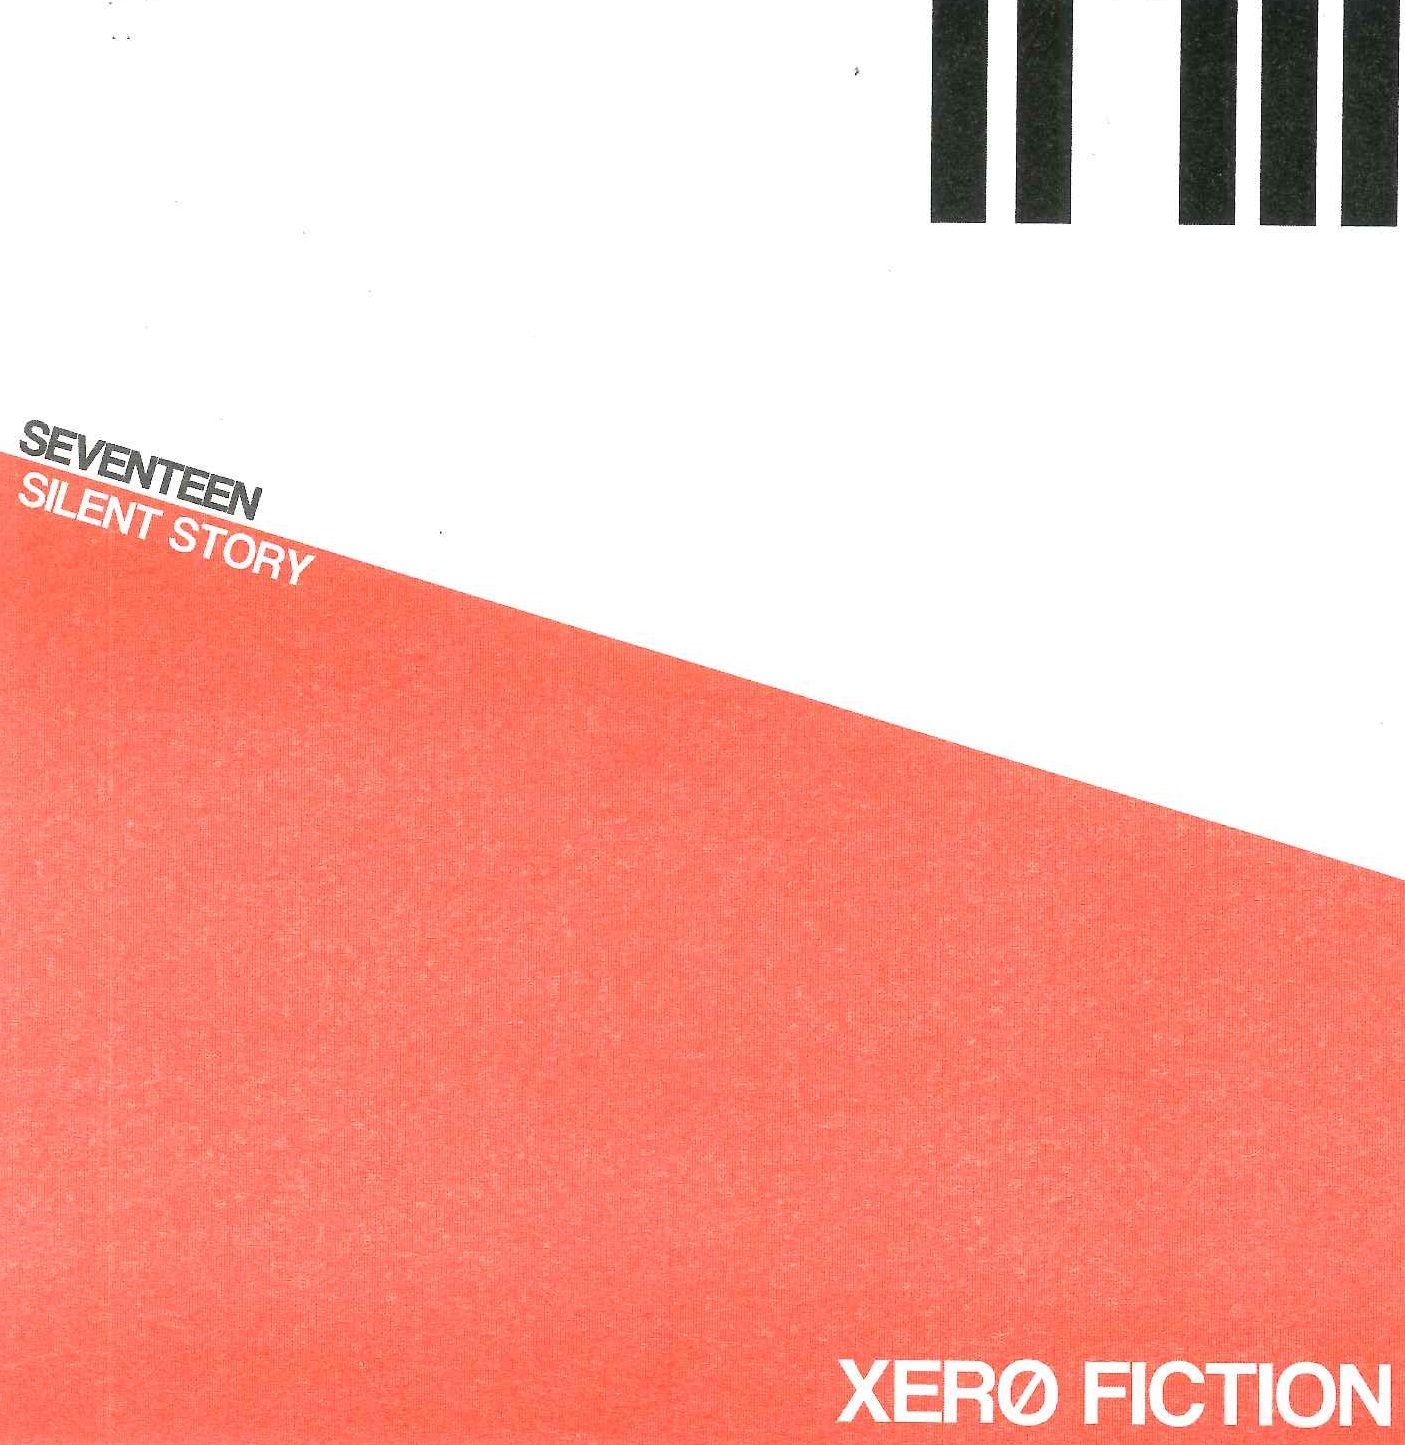 047_XERO FICTION	SEVENTEEN/ Silent Story